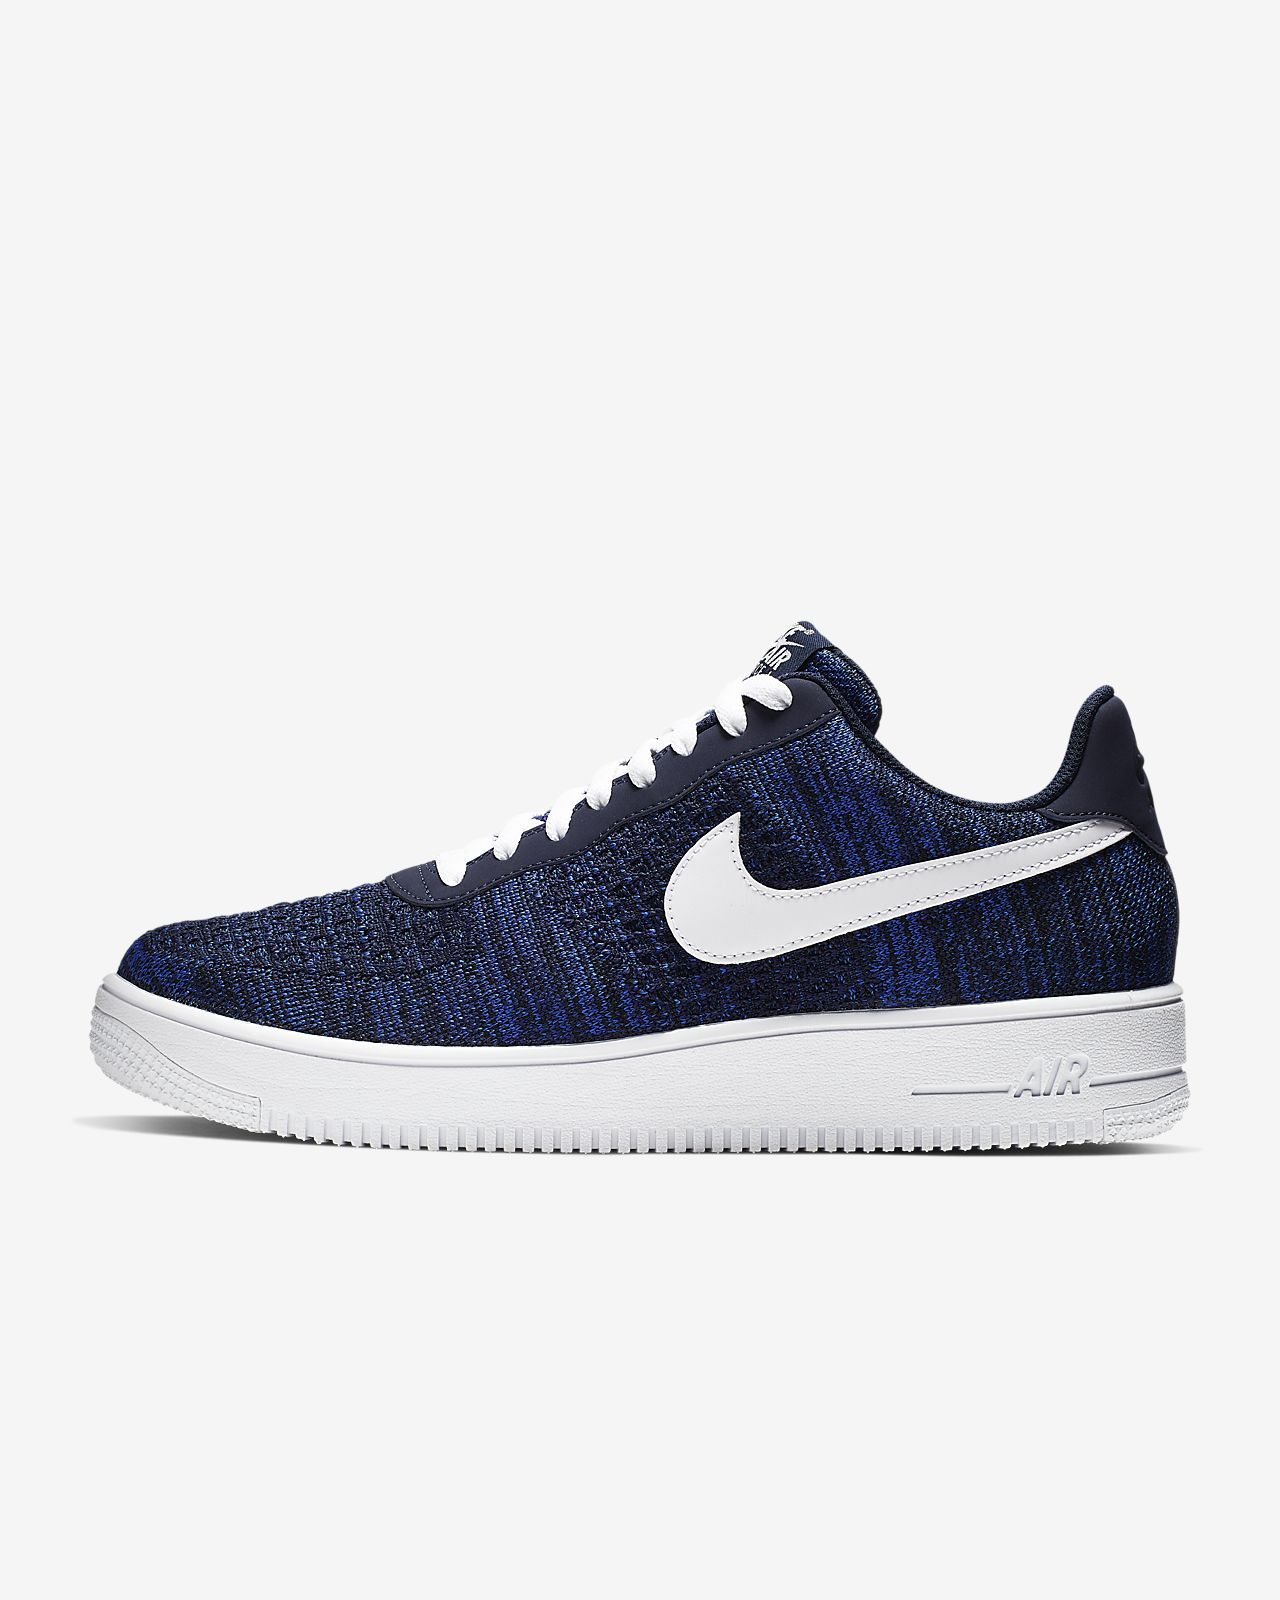 new style a9d57 ca0a4 ... Nike Air Force 1 Flyknit 2.0 Shoe